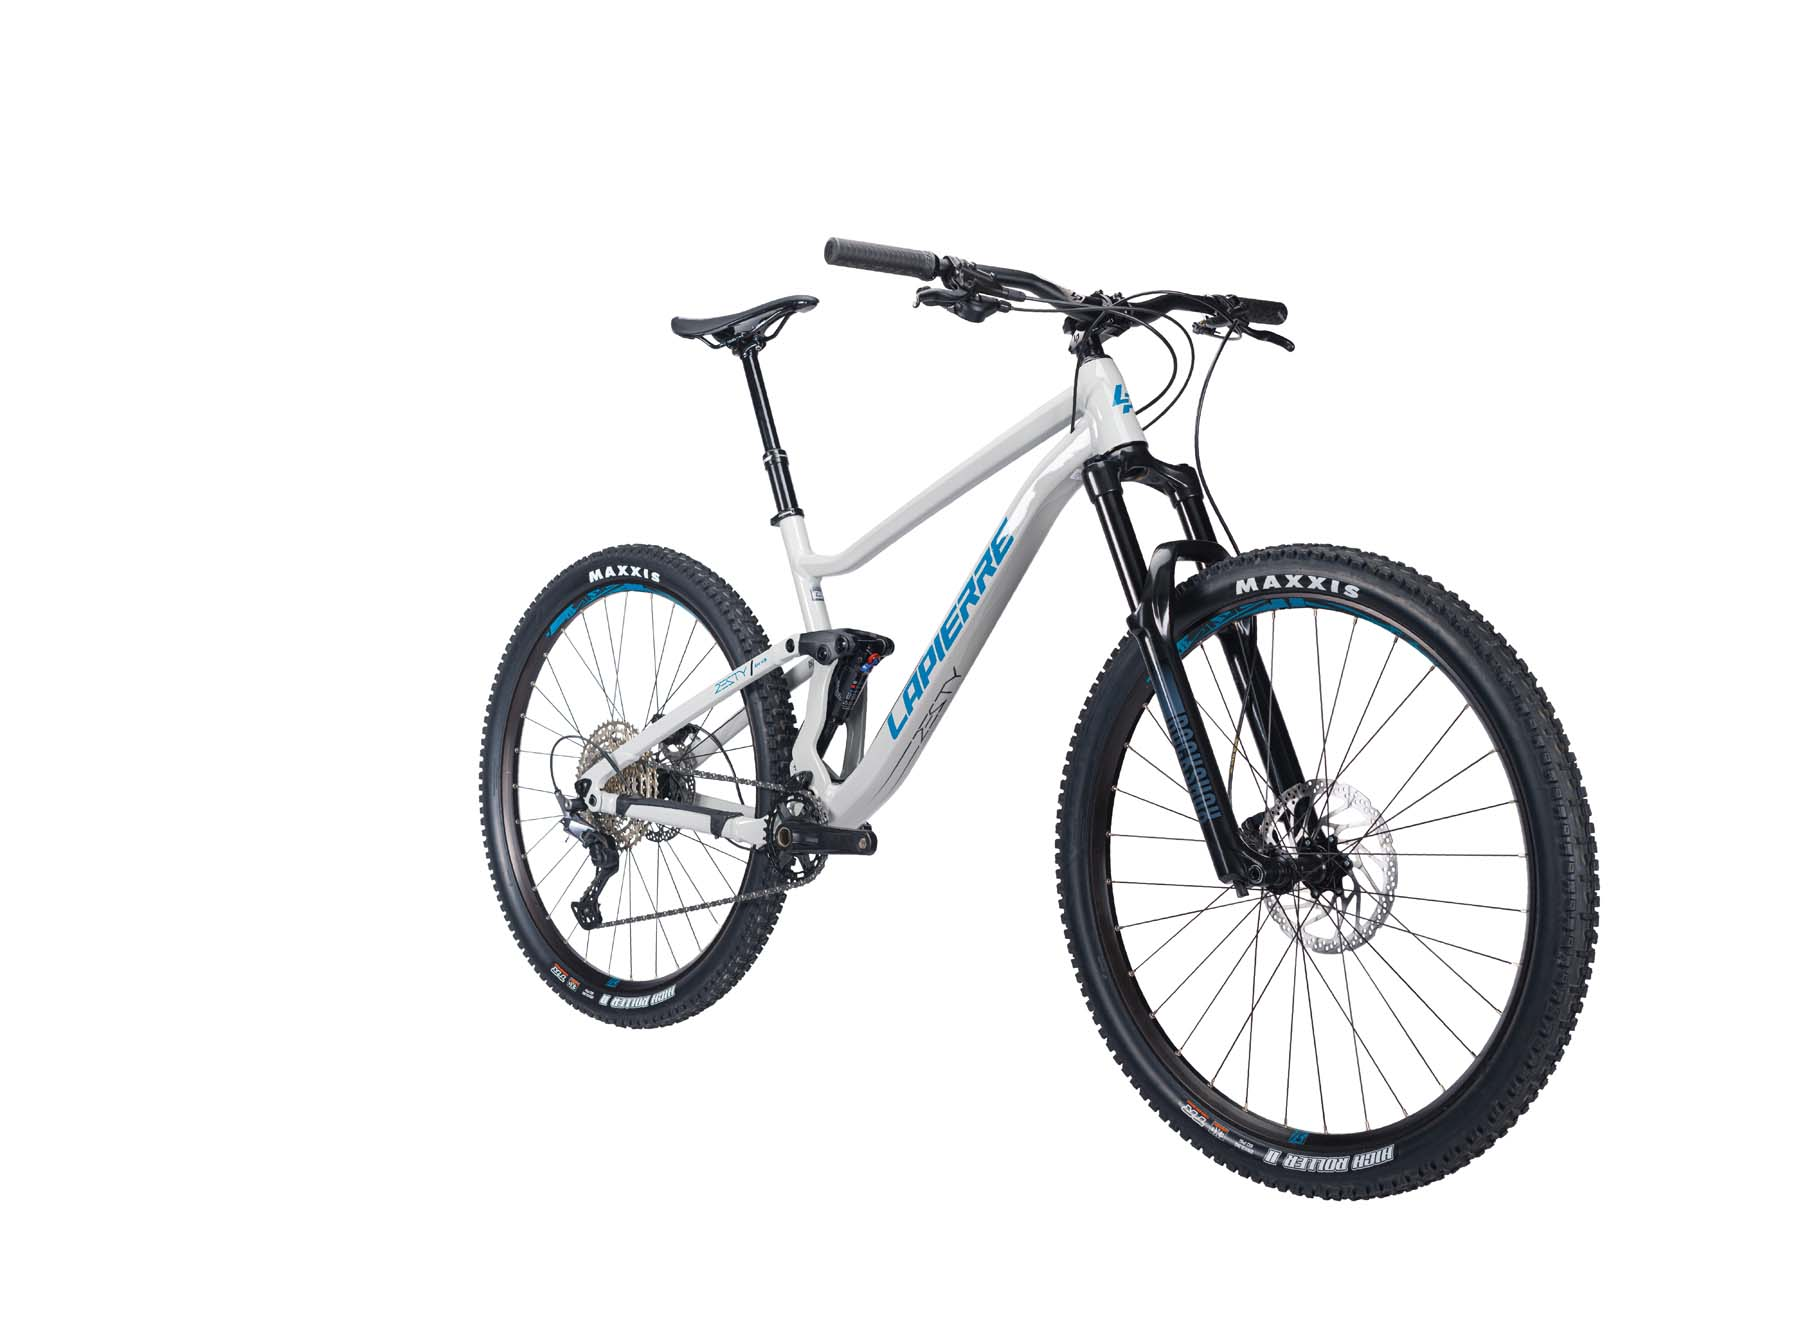 Lapierre Zesty AM 4.9 2021 All-Mountain Bike 1